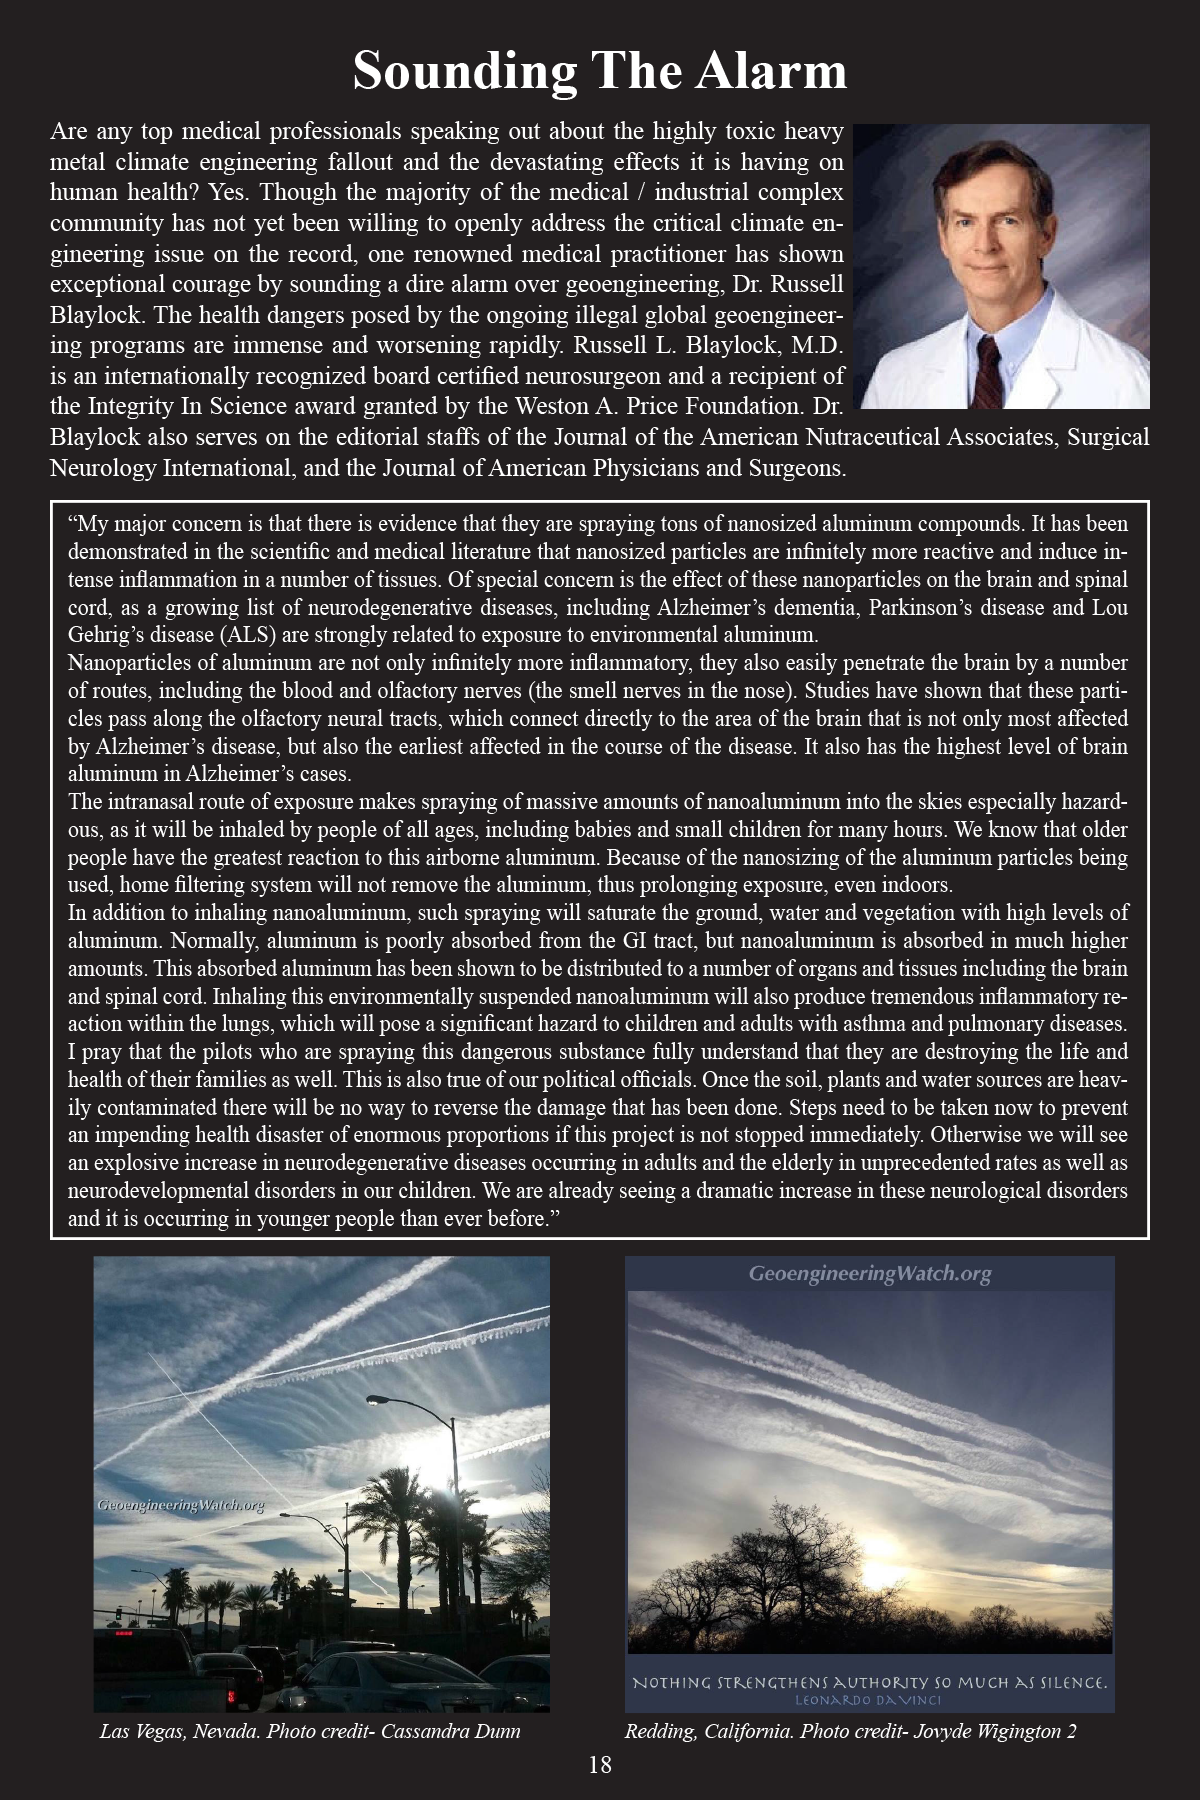 Climate Engineering Fact And Photo Summary - page 18